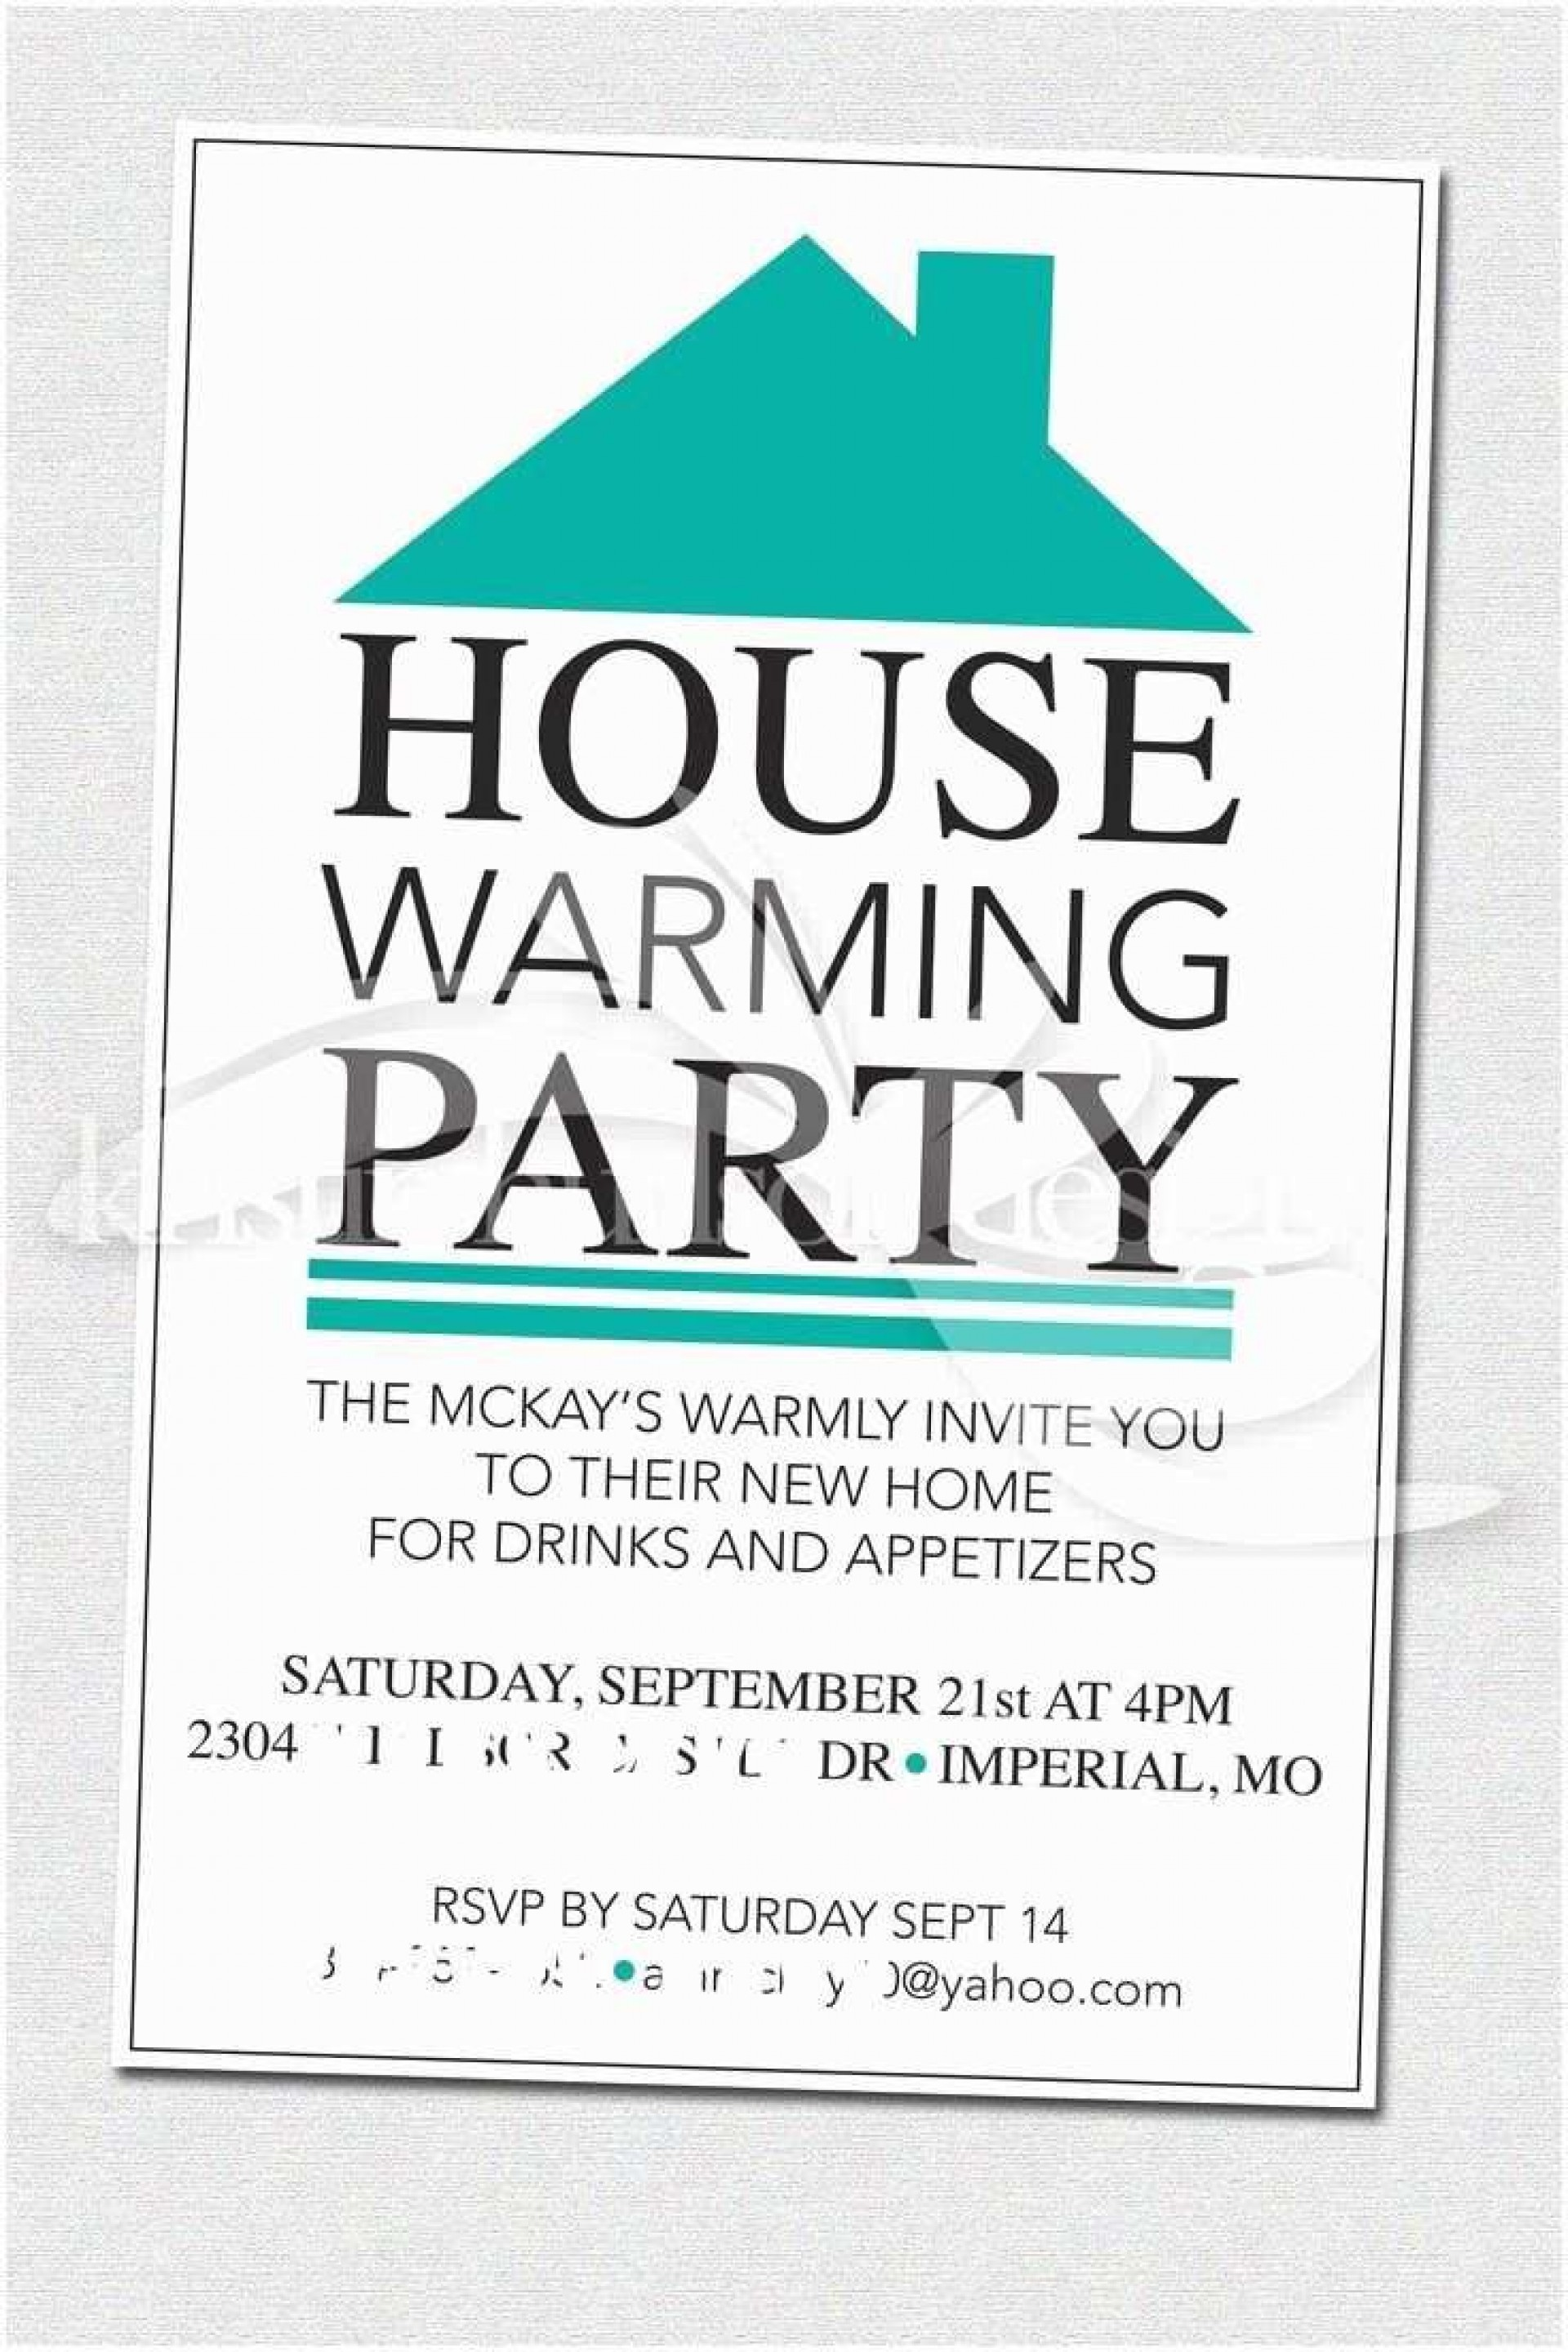 009 Breathtaking Free Housewarming Invitation Template High Resolution  Templates Printable India Video Download1920